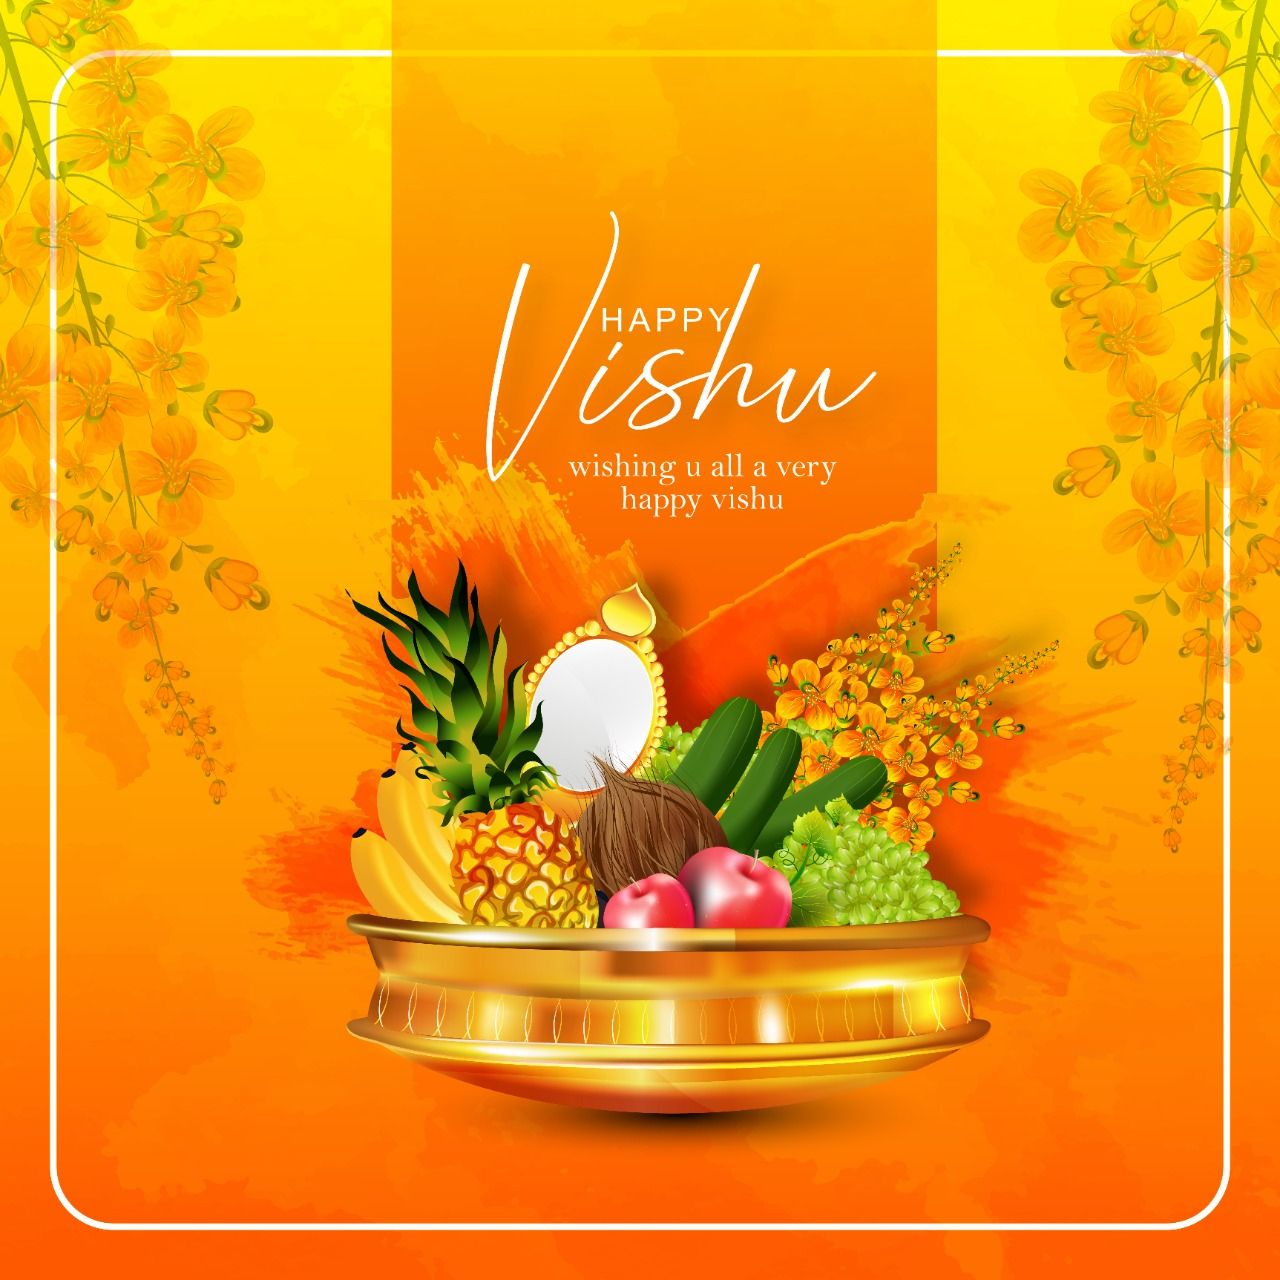 2021 |Happy Vishu Kani Wishes Greetings| Malayalam New Year Images Messages